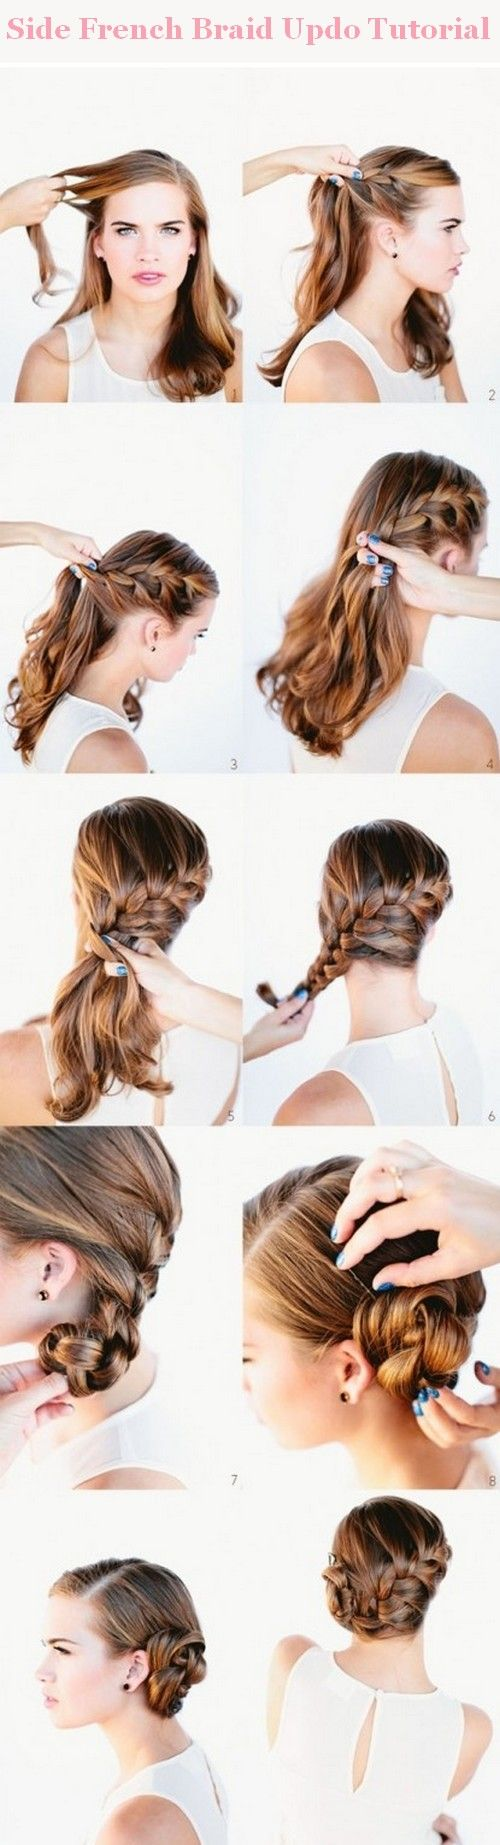 Side french braid updo tutorial i think my hair needs to grow a